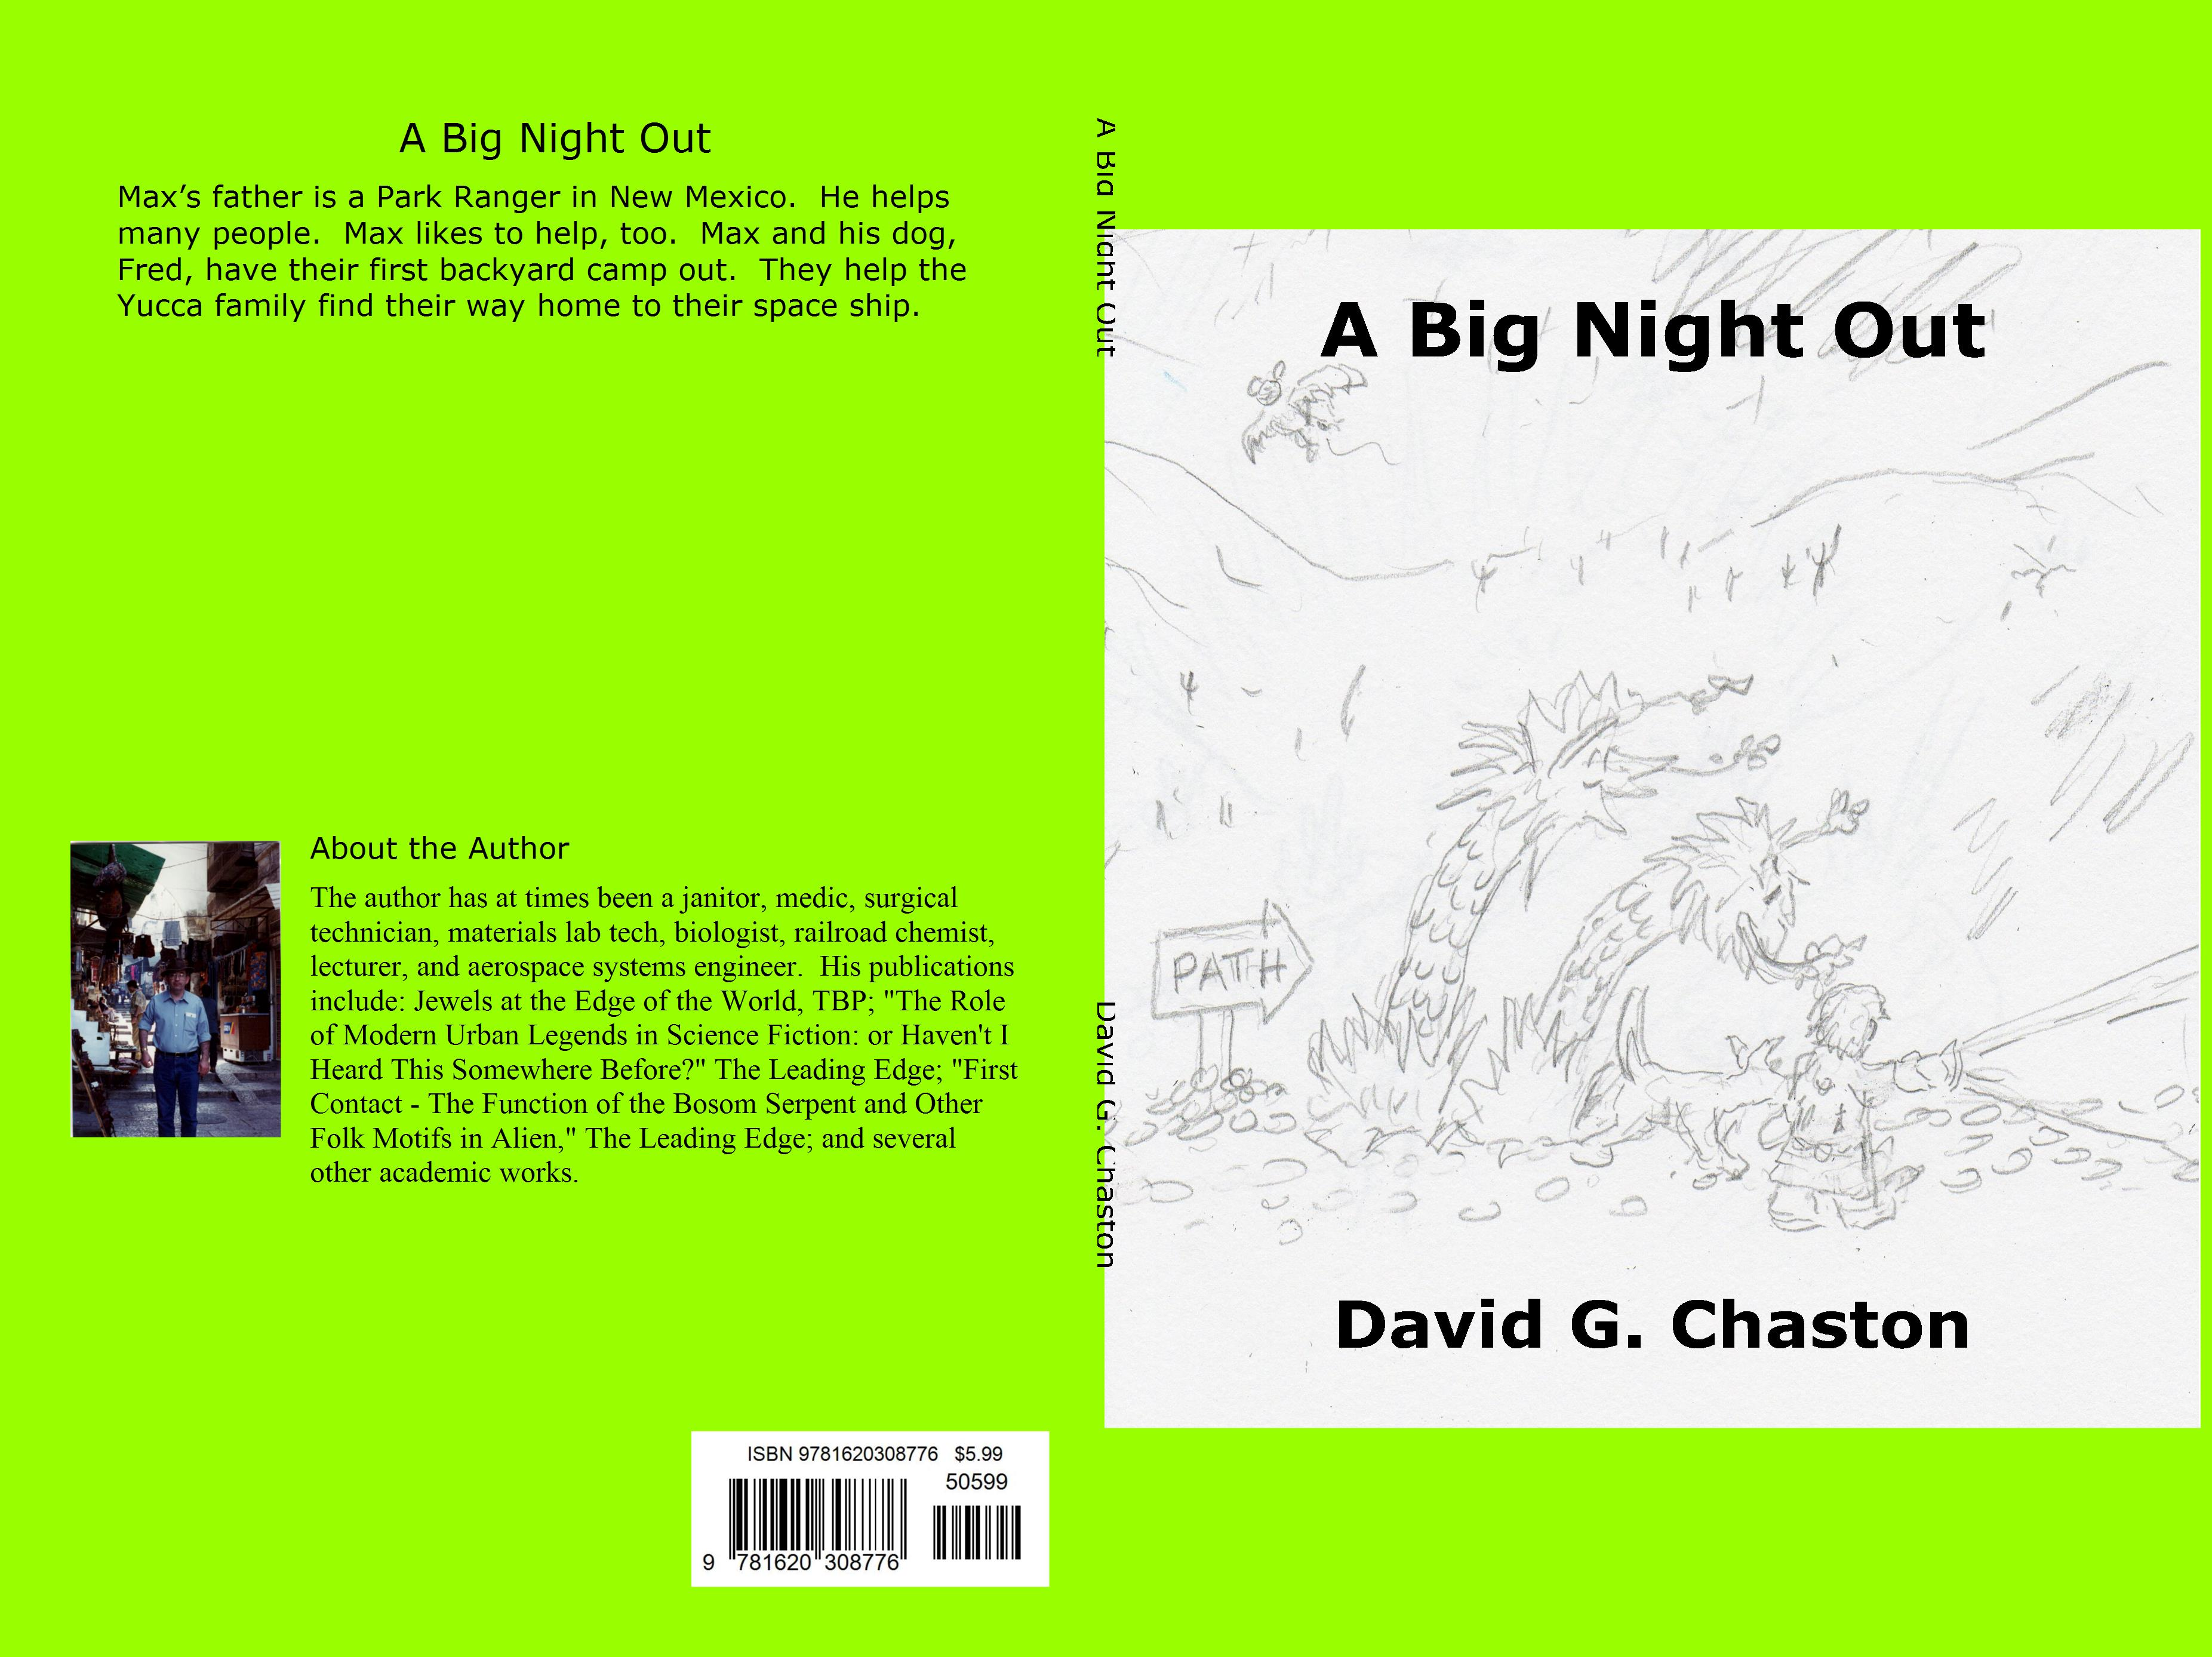 A Big Night Out cover image